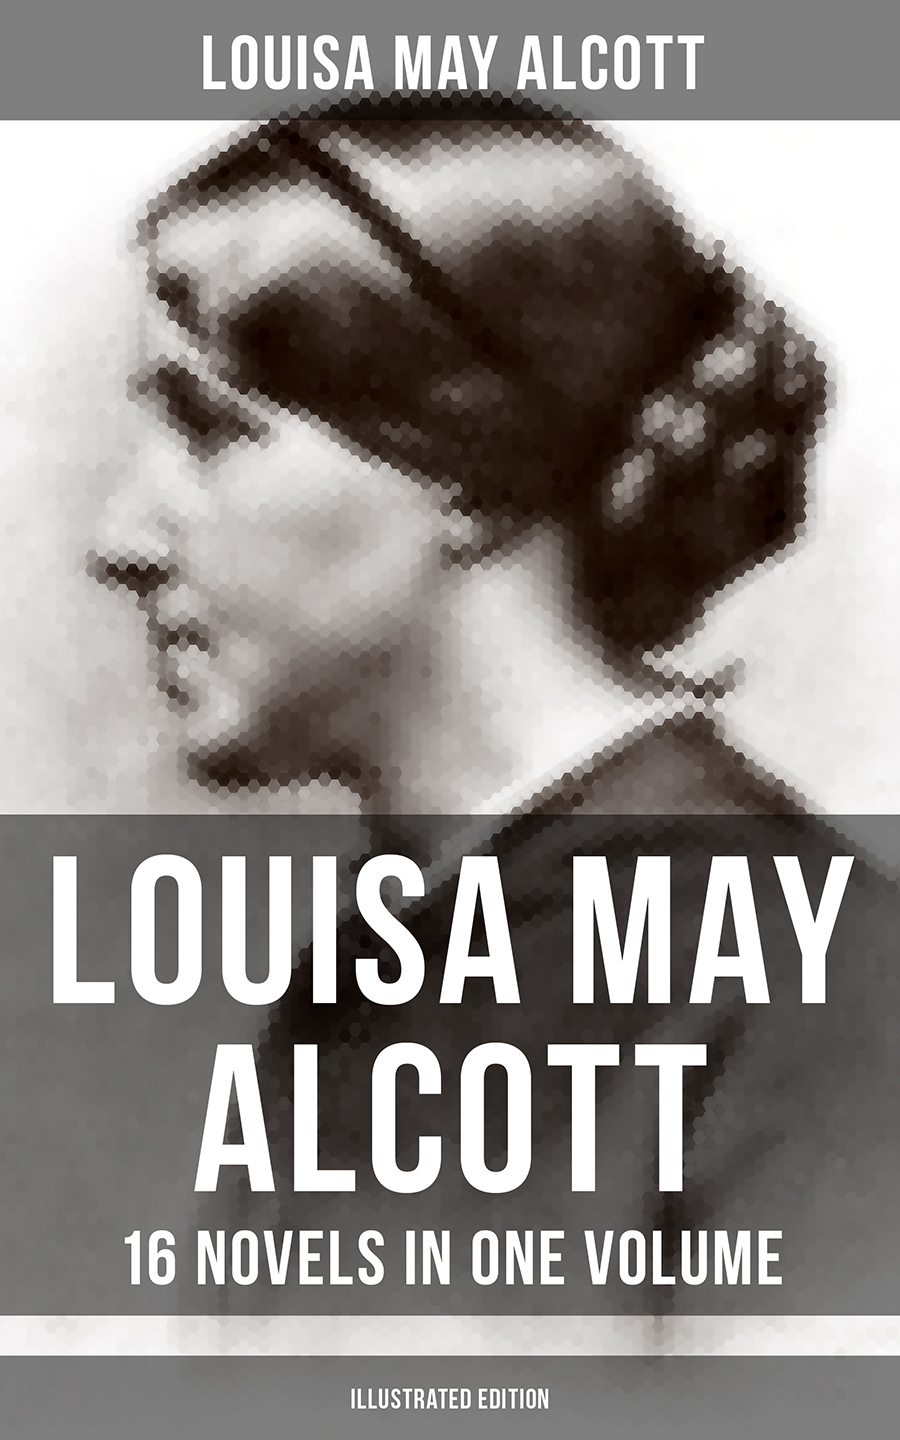 Луиза Мэй Олкотт Louisa May Alcott: 16 Novels in One Volume (Illustrated Edition)